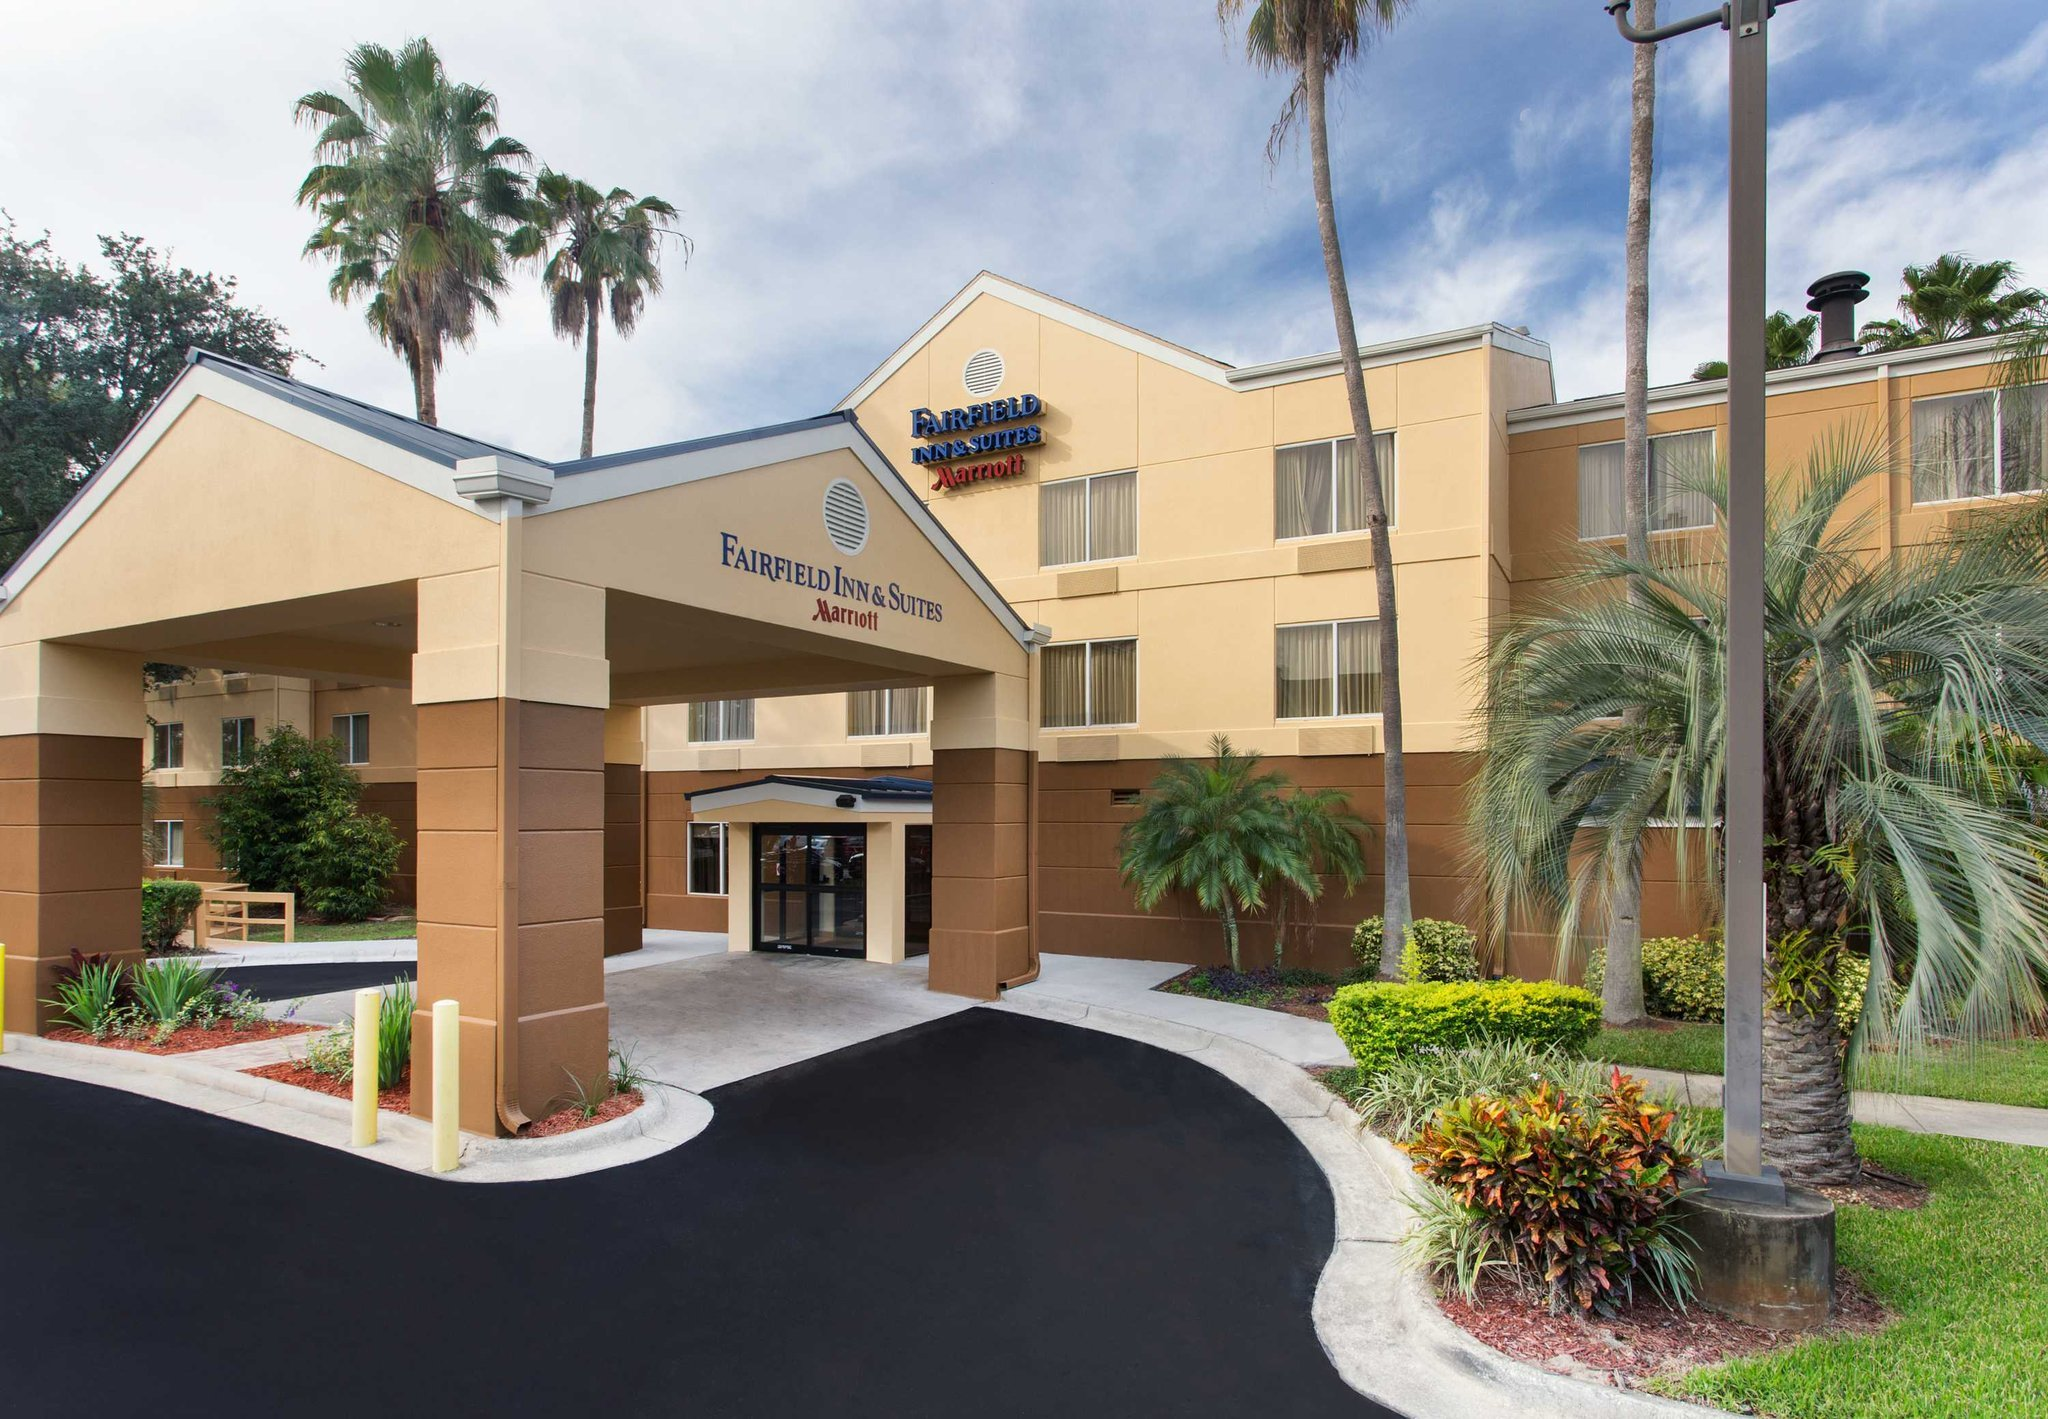 Fairfield Inn & Suites Tampa Brandon